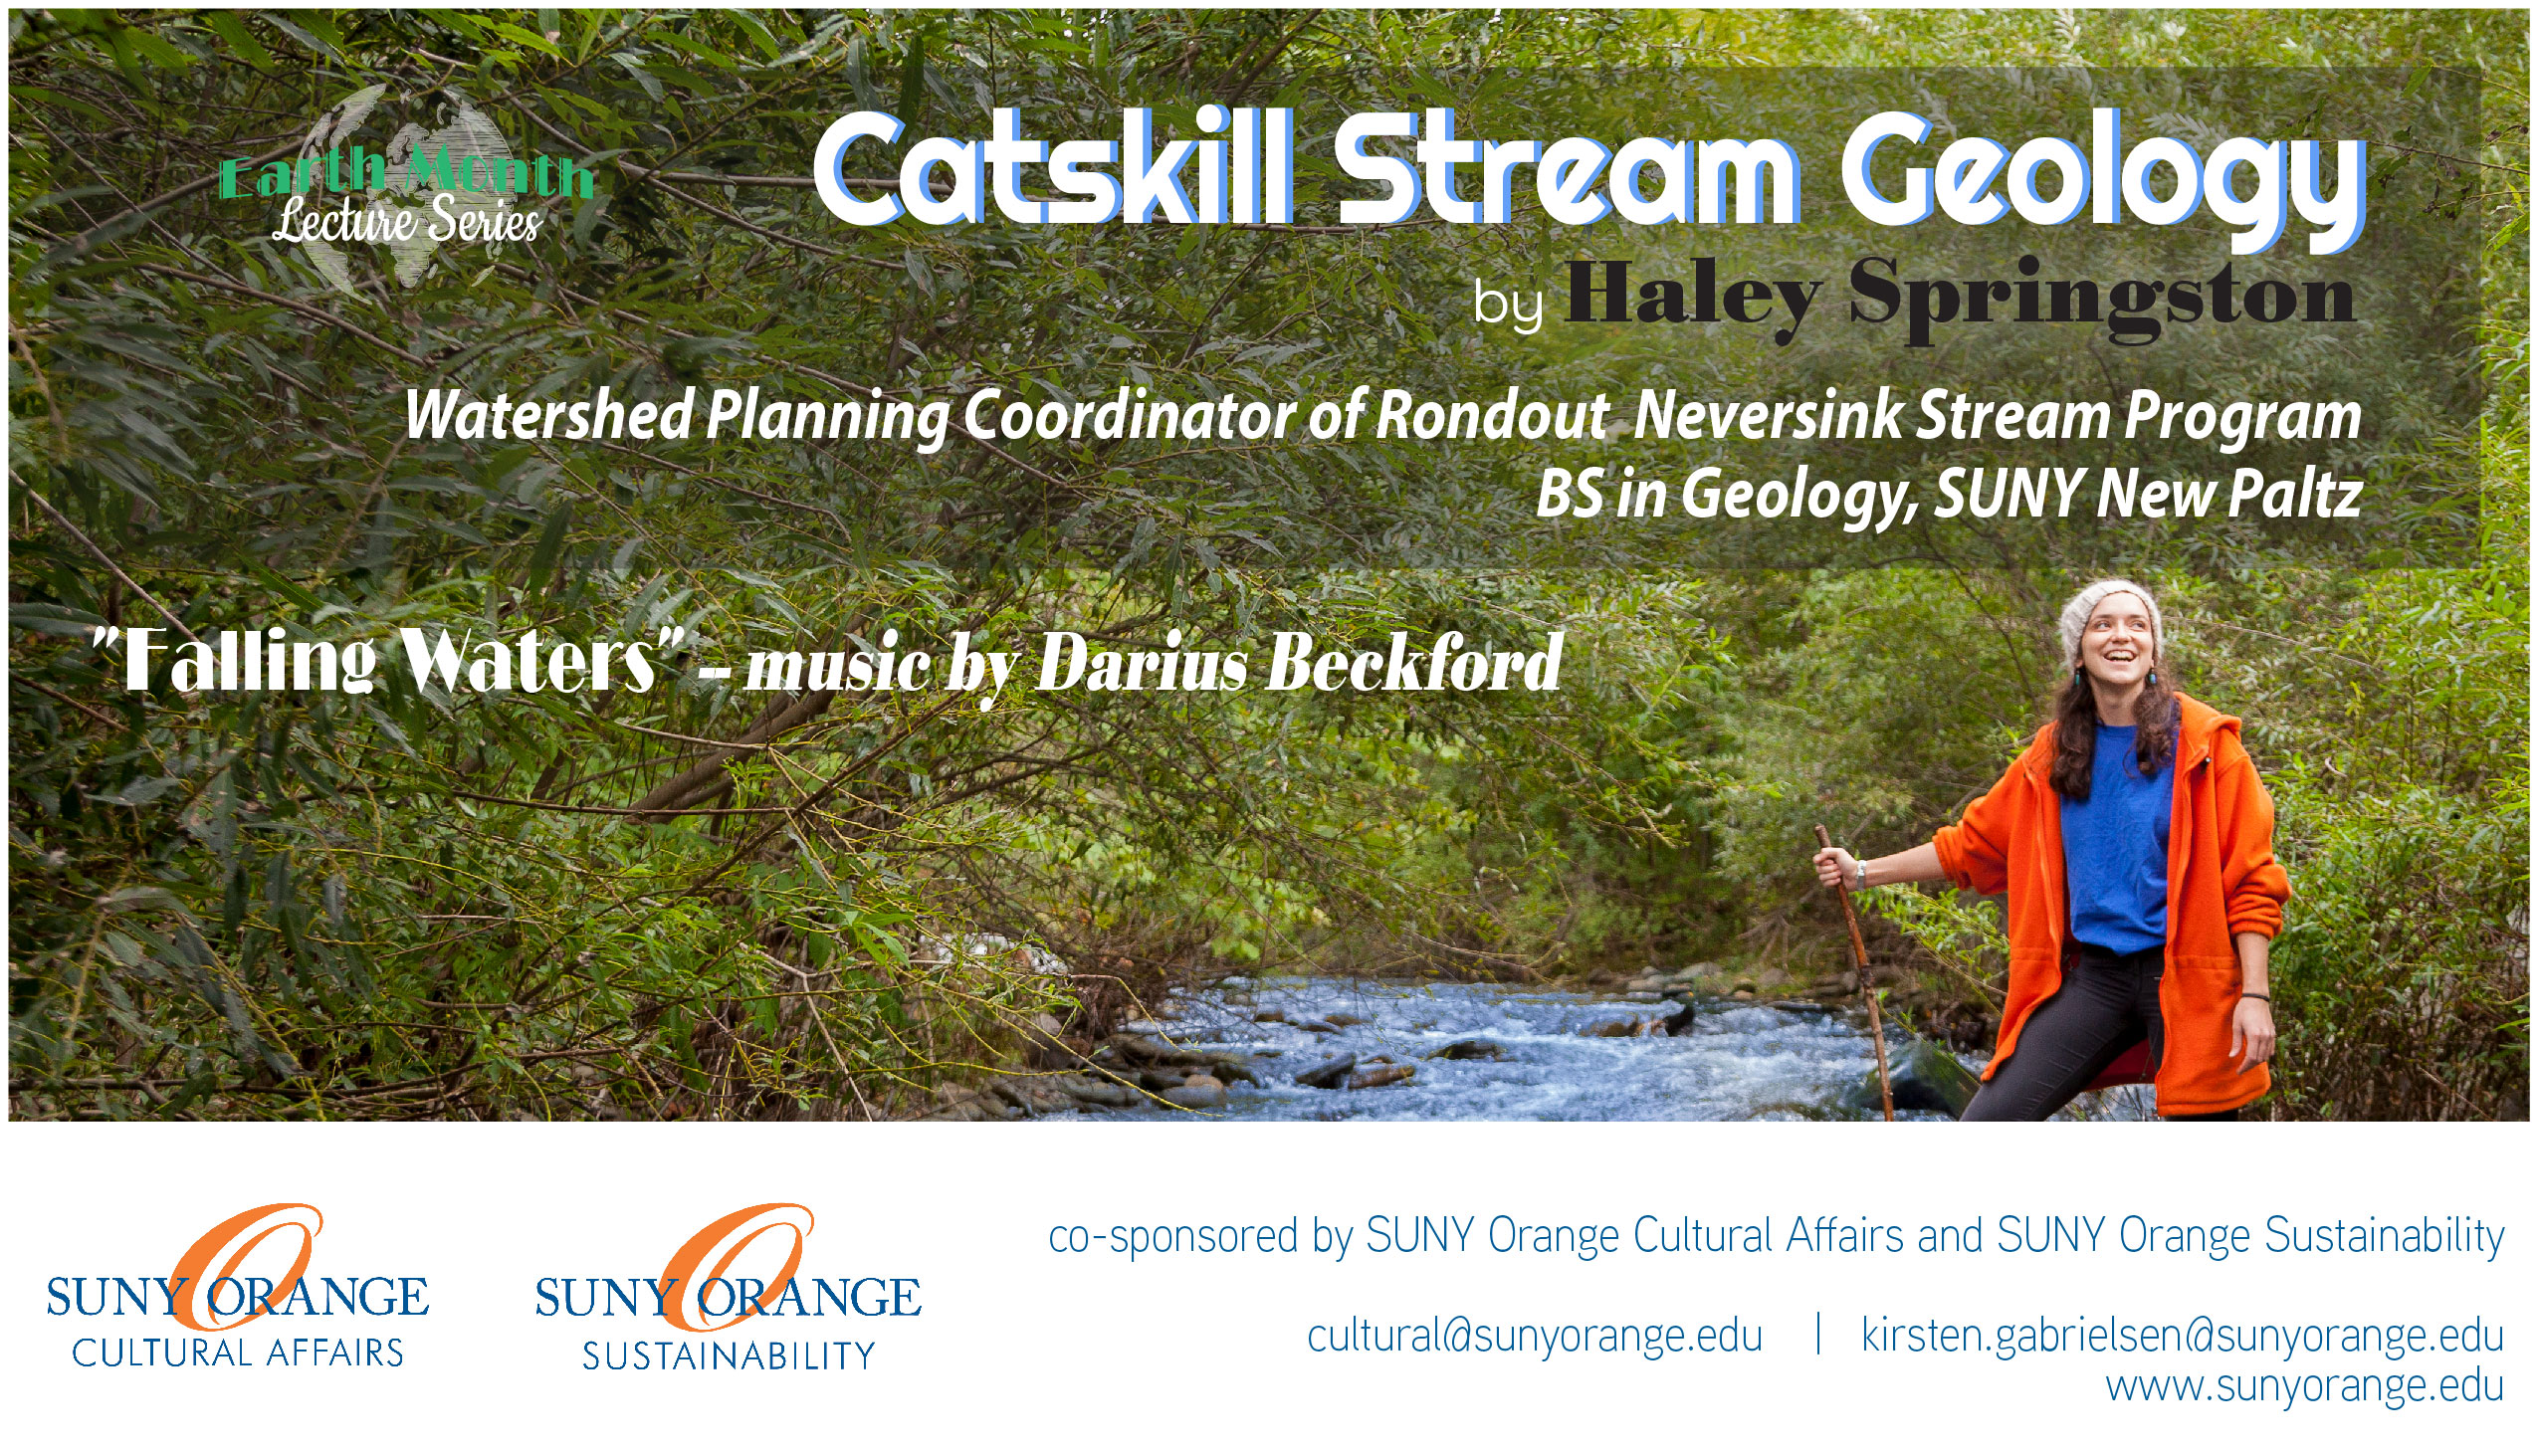 Catskill Stream Geology ~ lecture by Haley Springston